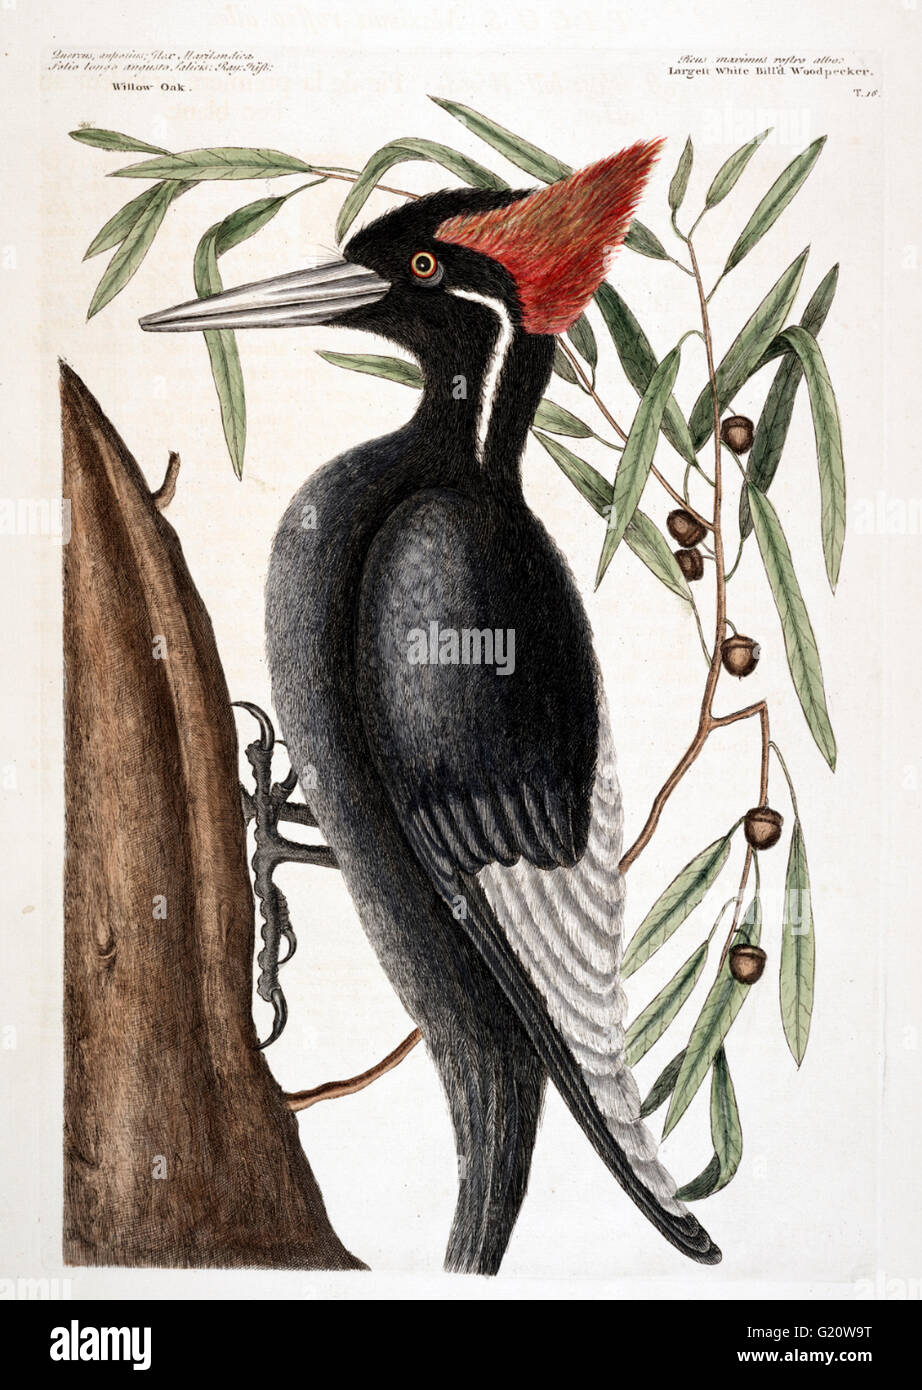 Ivory-billed Woodpecker - Extinct - Plate 16, hand coloured etching from The Natural History of Carolina, Florida - Stock Image